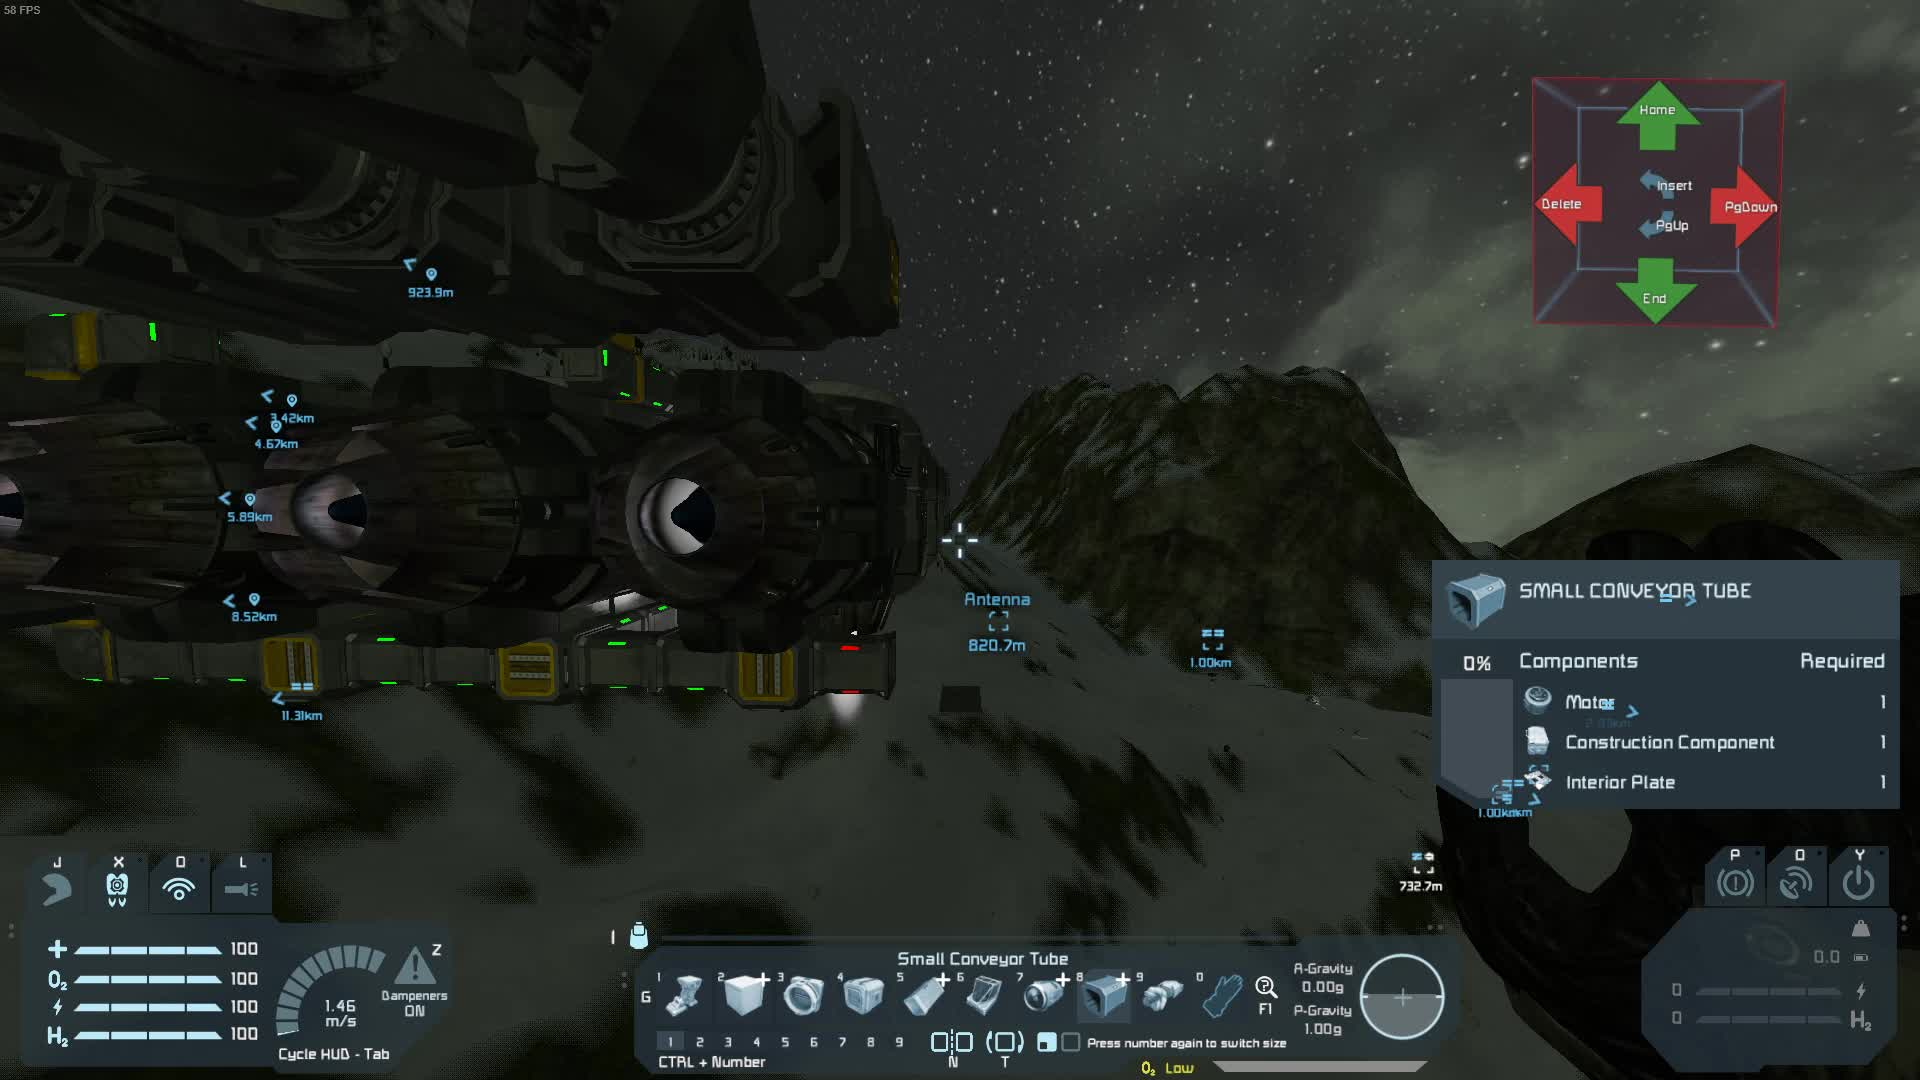 spaceengineers, vlc-record-2018-10-15-06h38m56s-Space Engineers 2018.10.15 - 06.36.15.12.DVR.mp4- GIFs